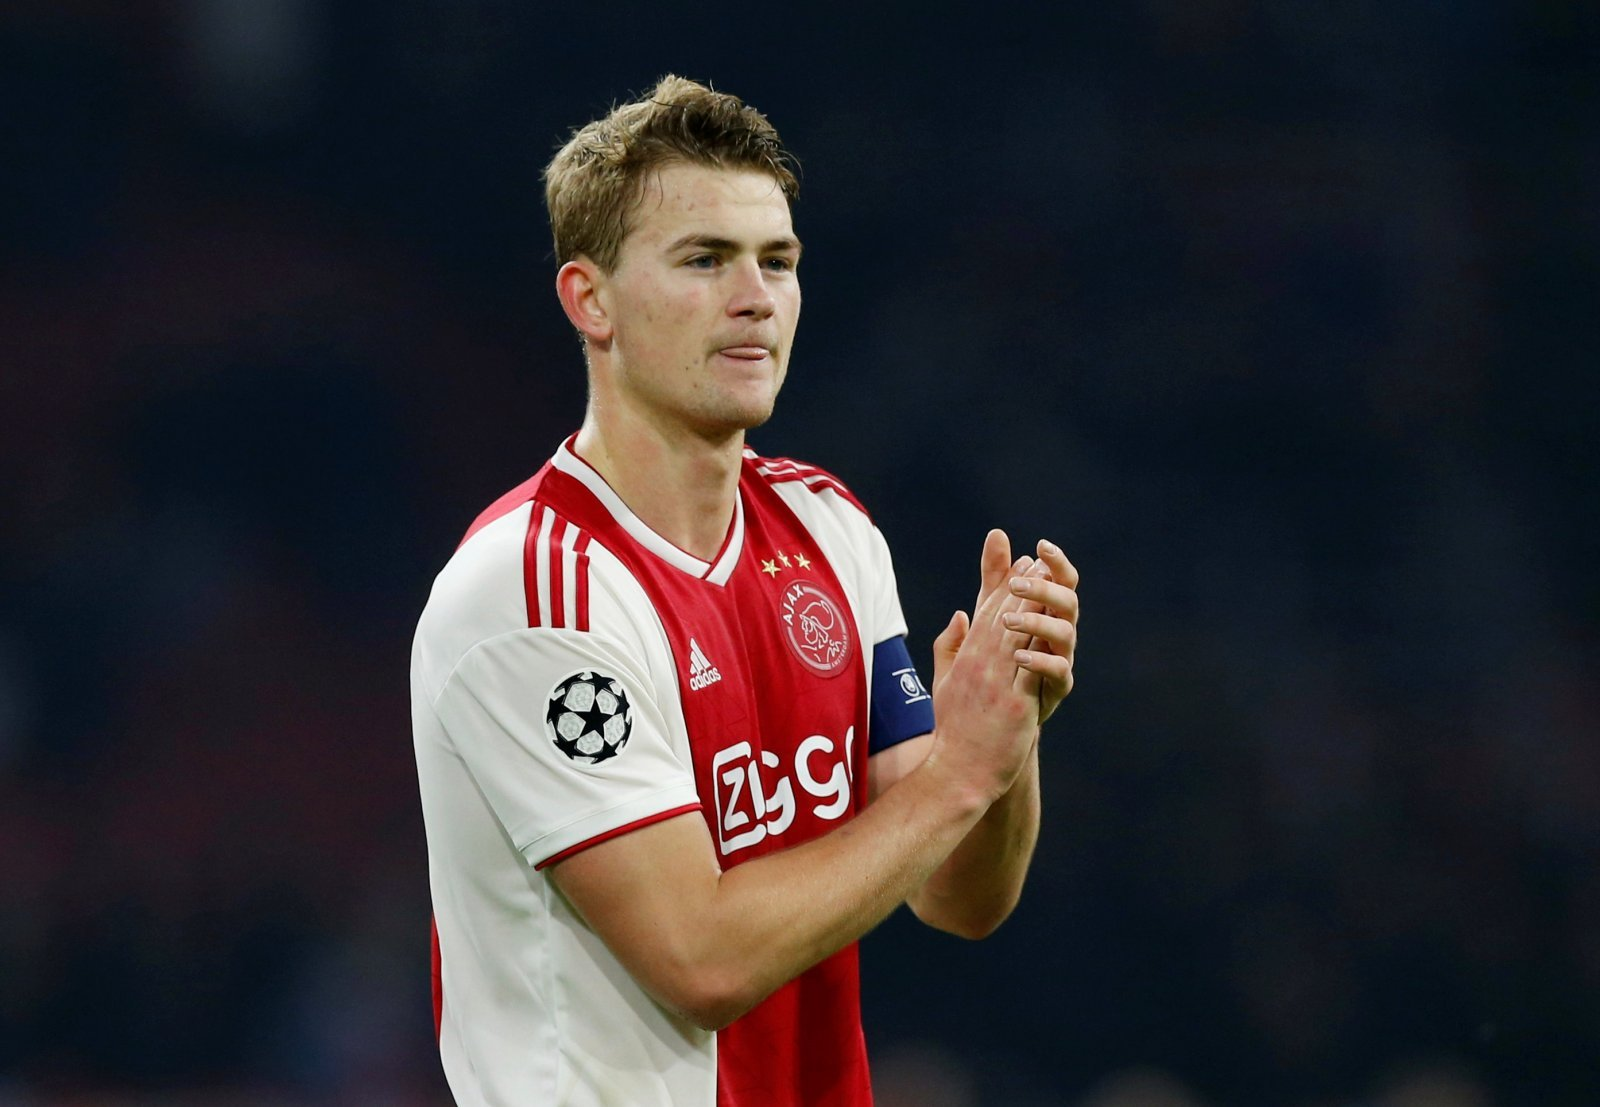 Matthijs de Ligt would take Liverpool's defensive to a whole new level in the summer